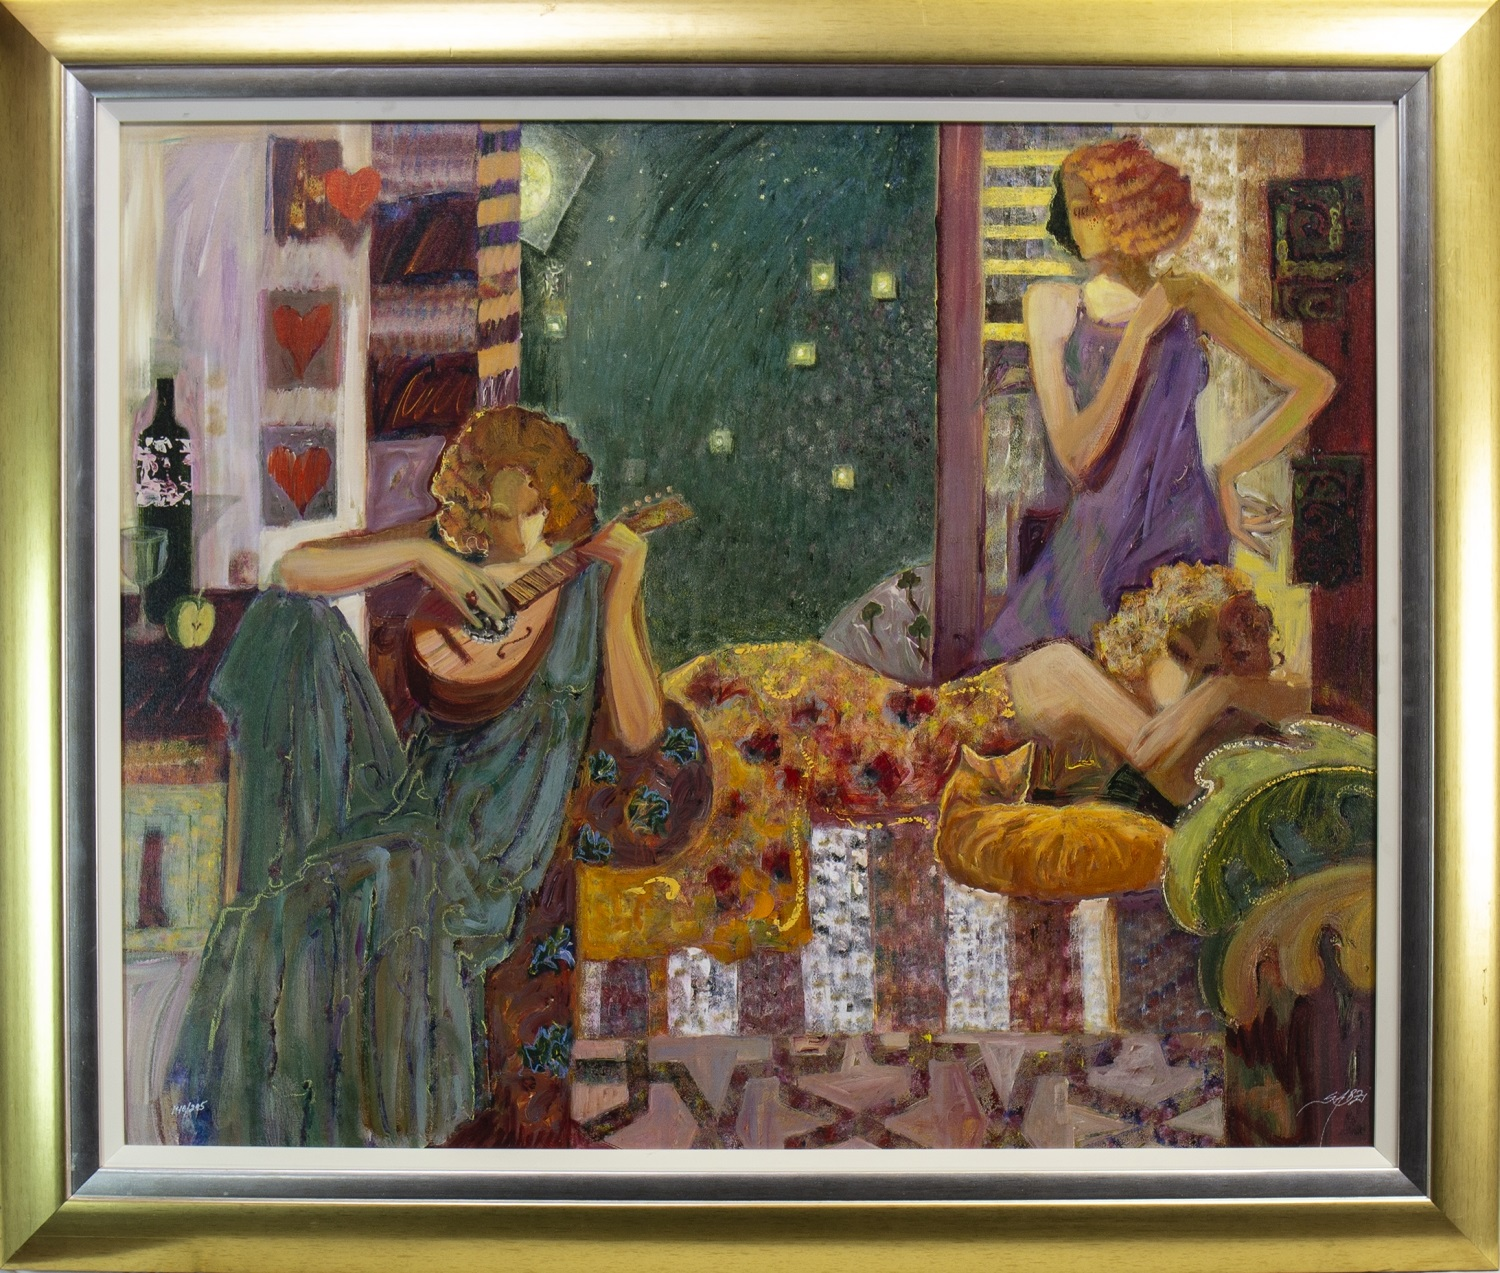 Lot 662 - THE MUSES, AN OIL